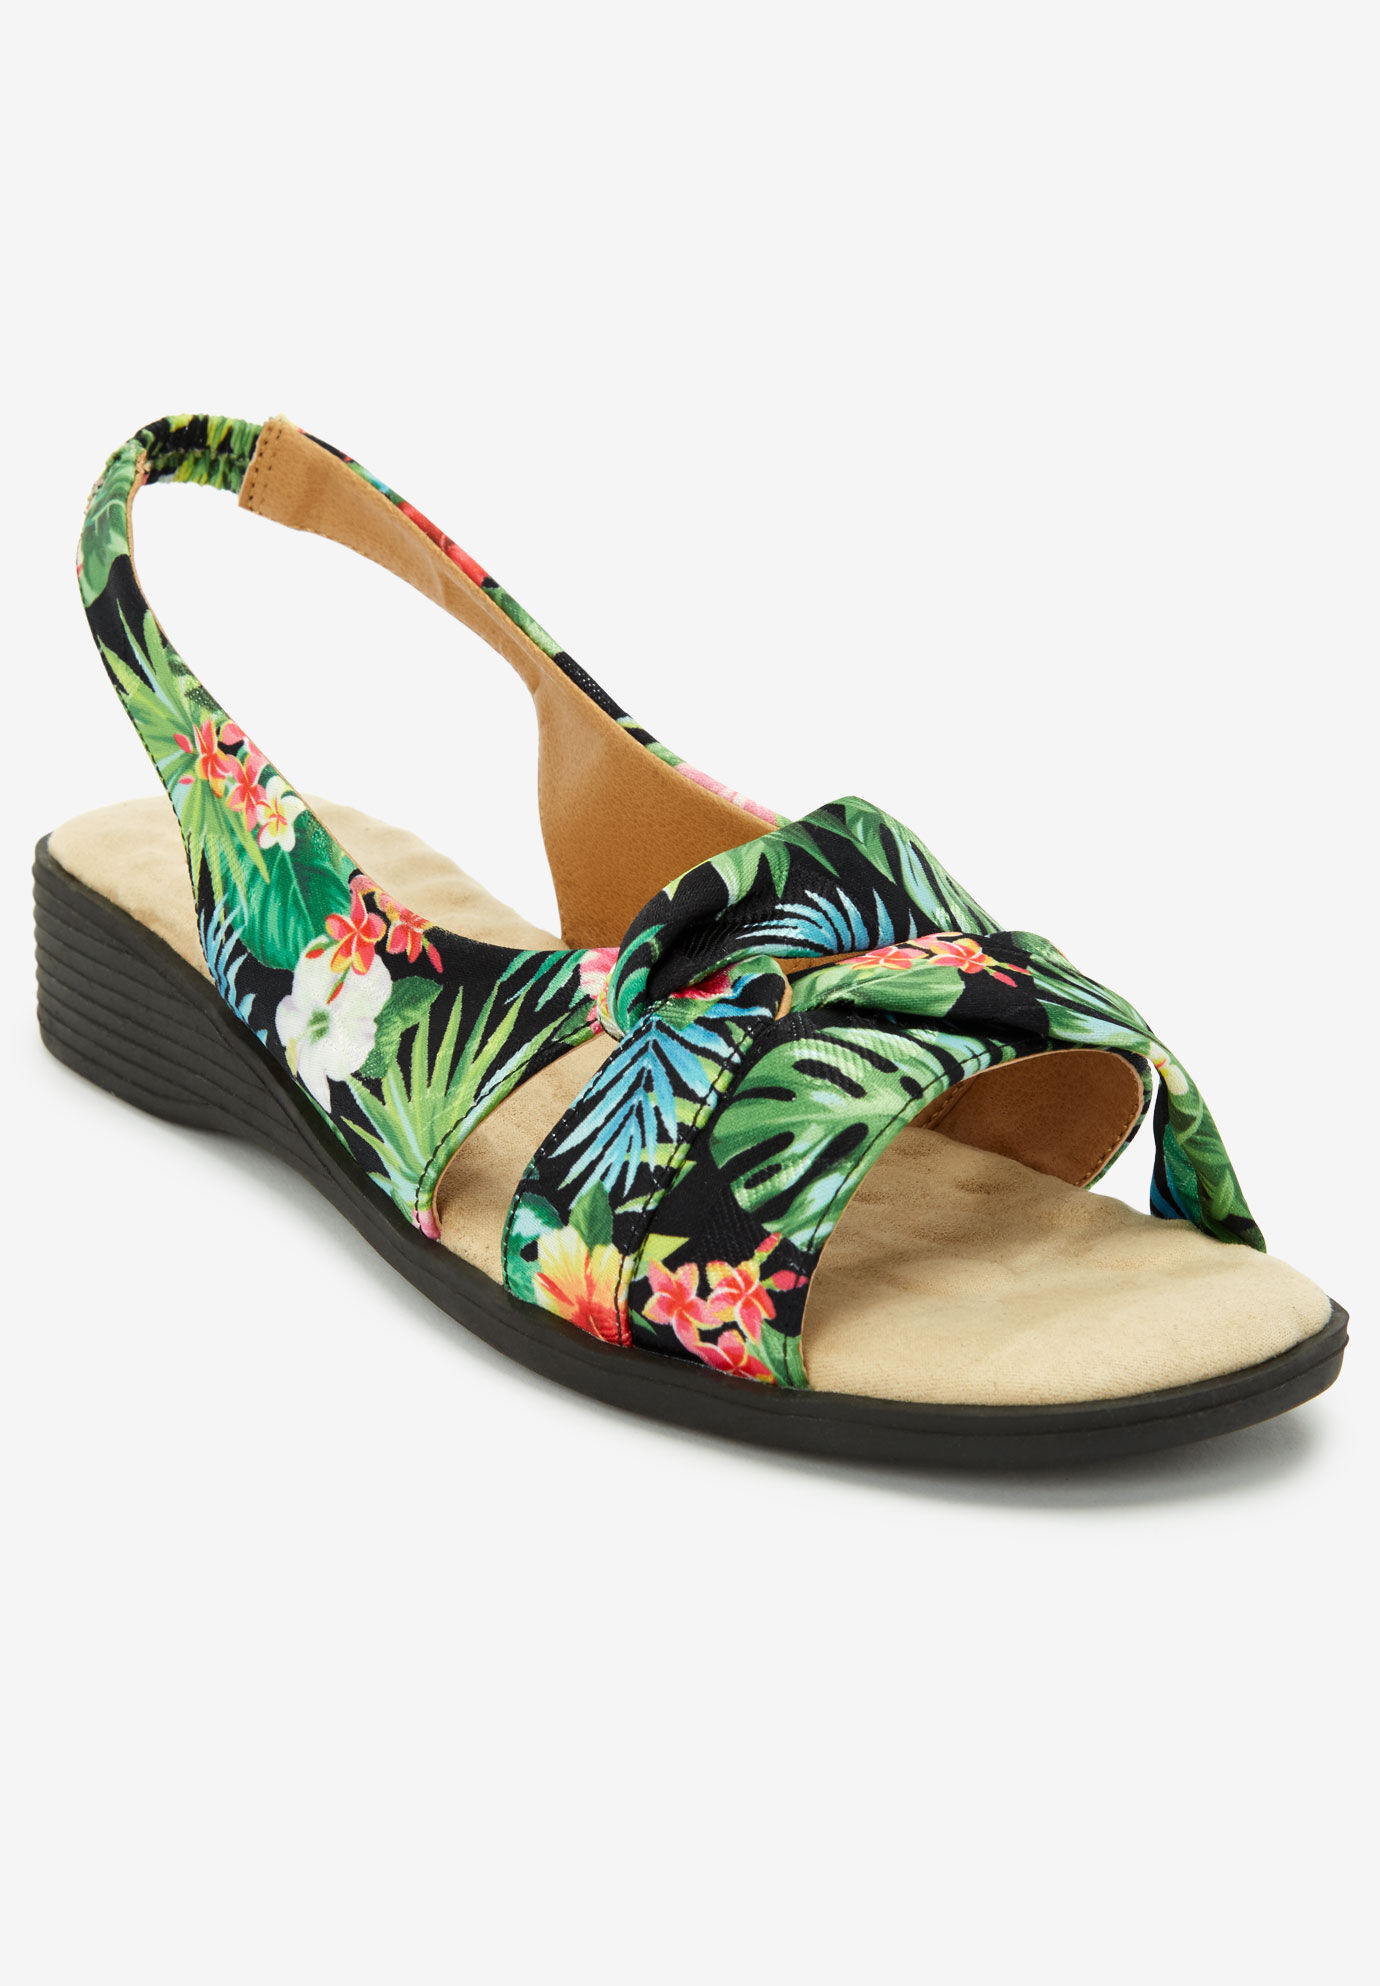 Wideamp; For Width WomenWoman Extra Shoes Within QrBthosCxd